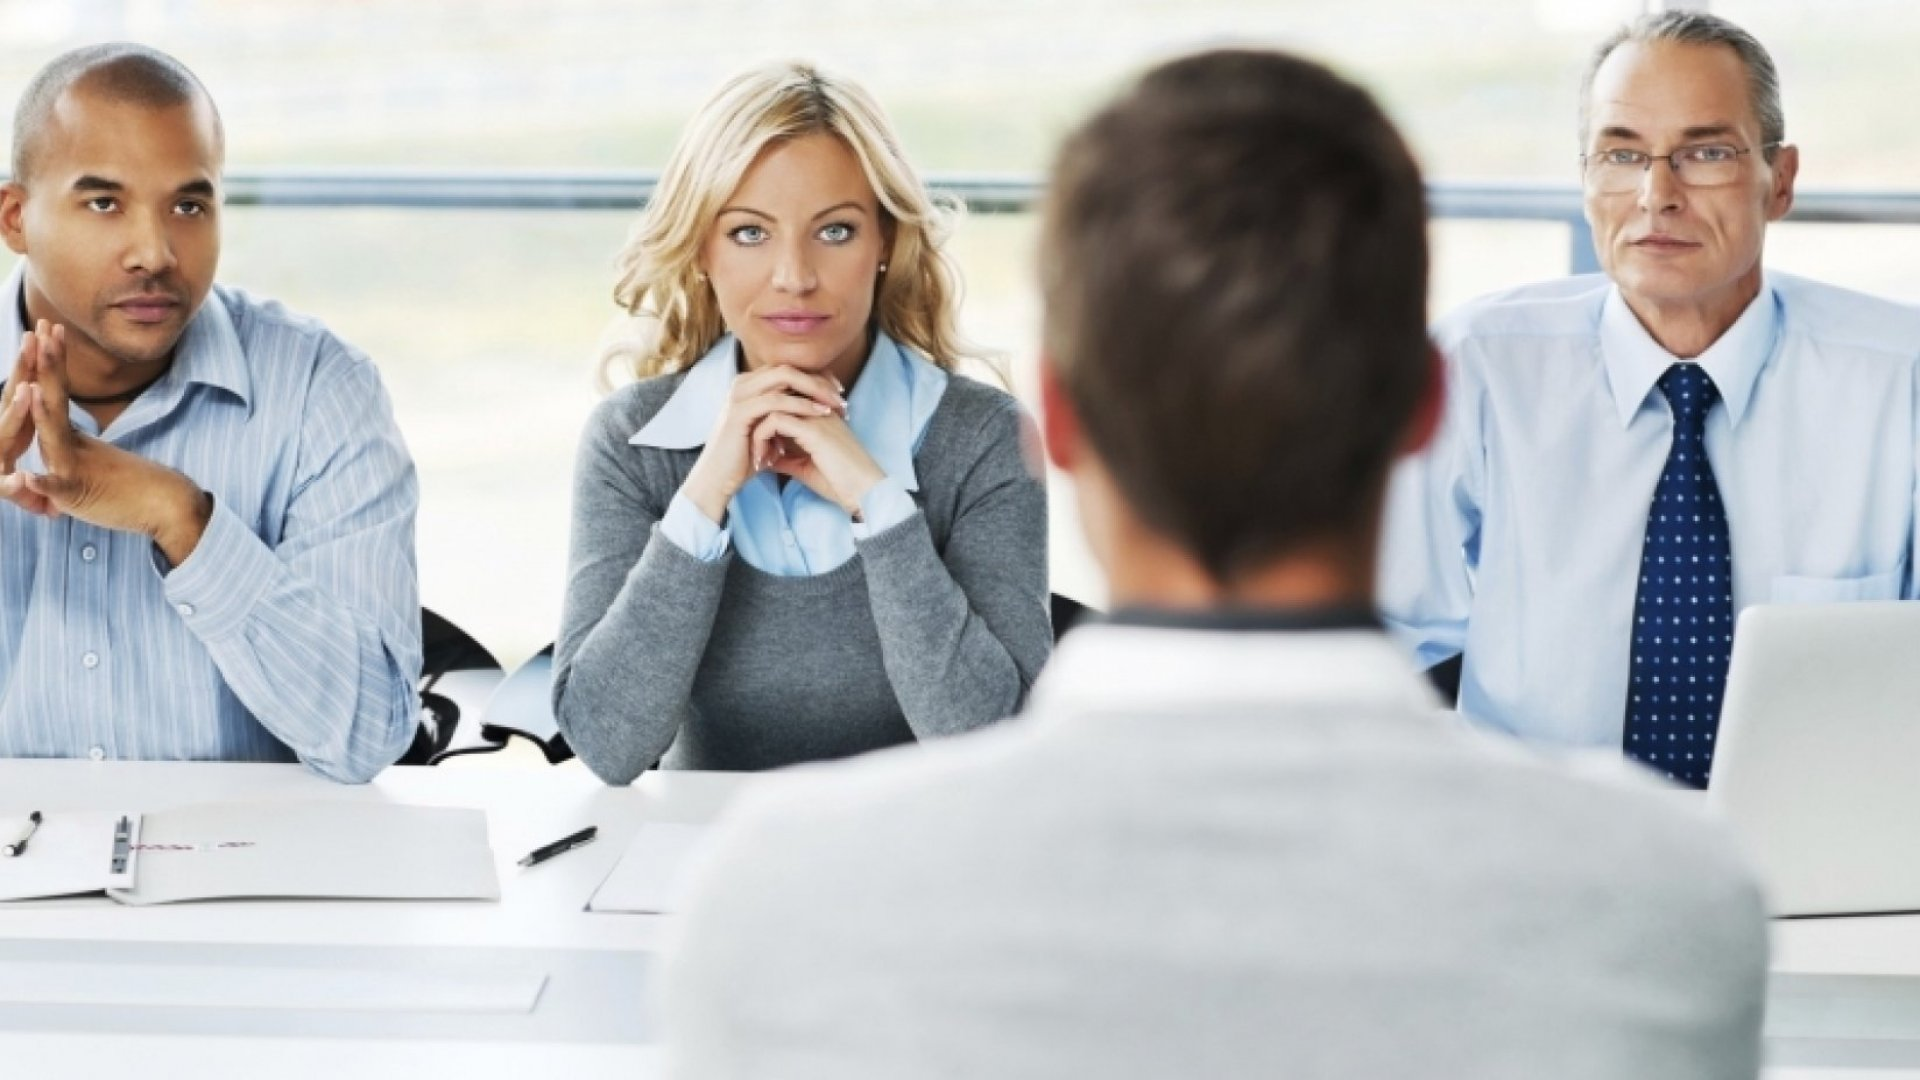 10 Reasons You're Not Getting Hired